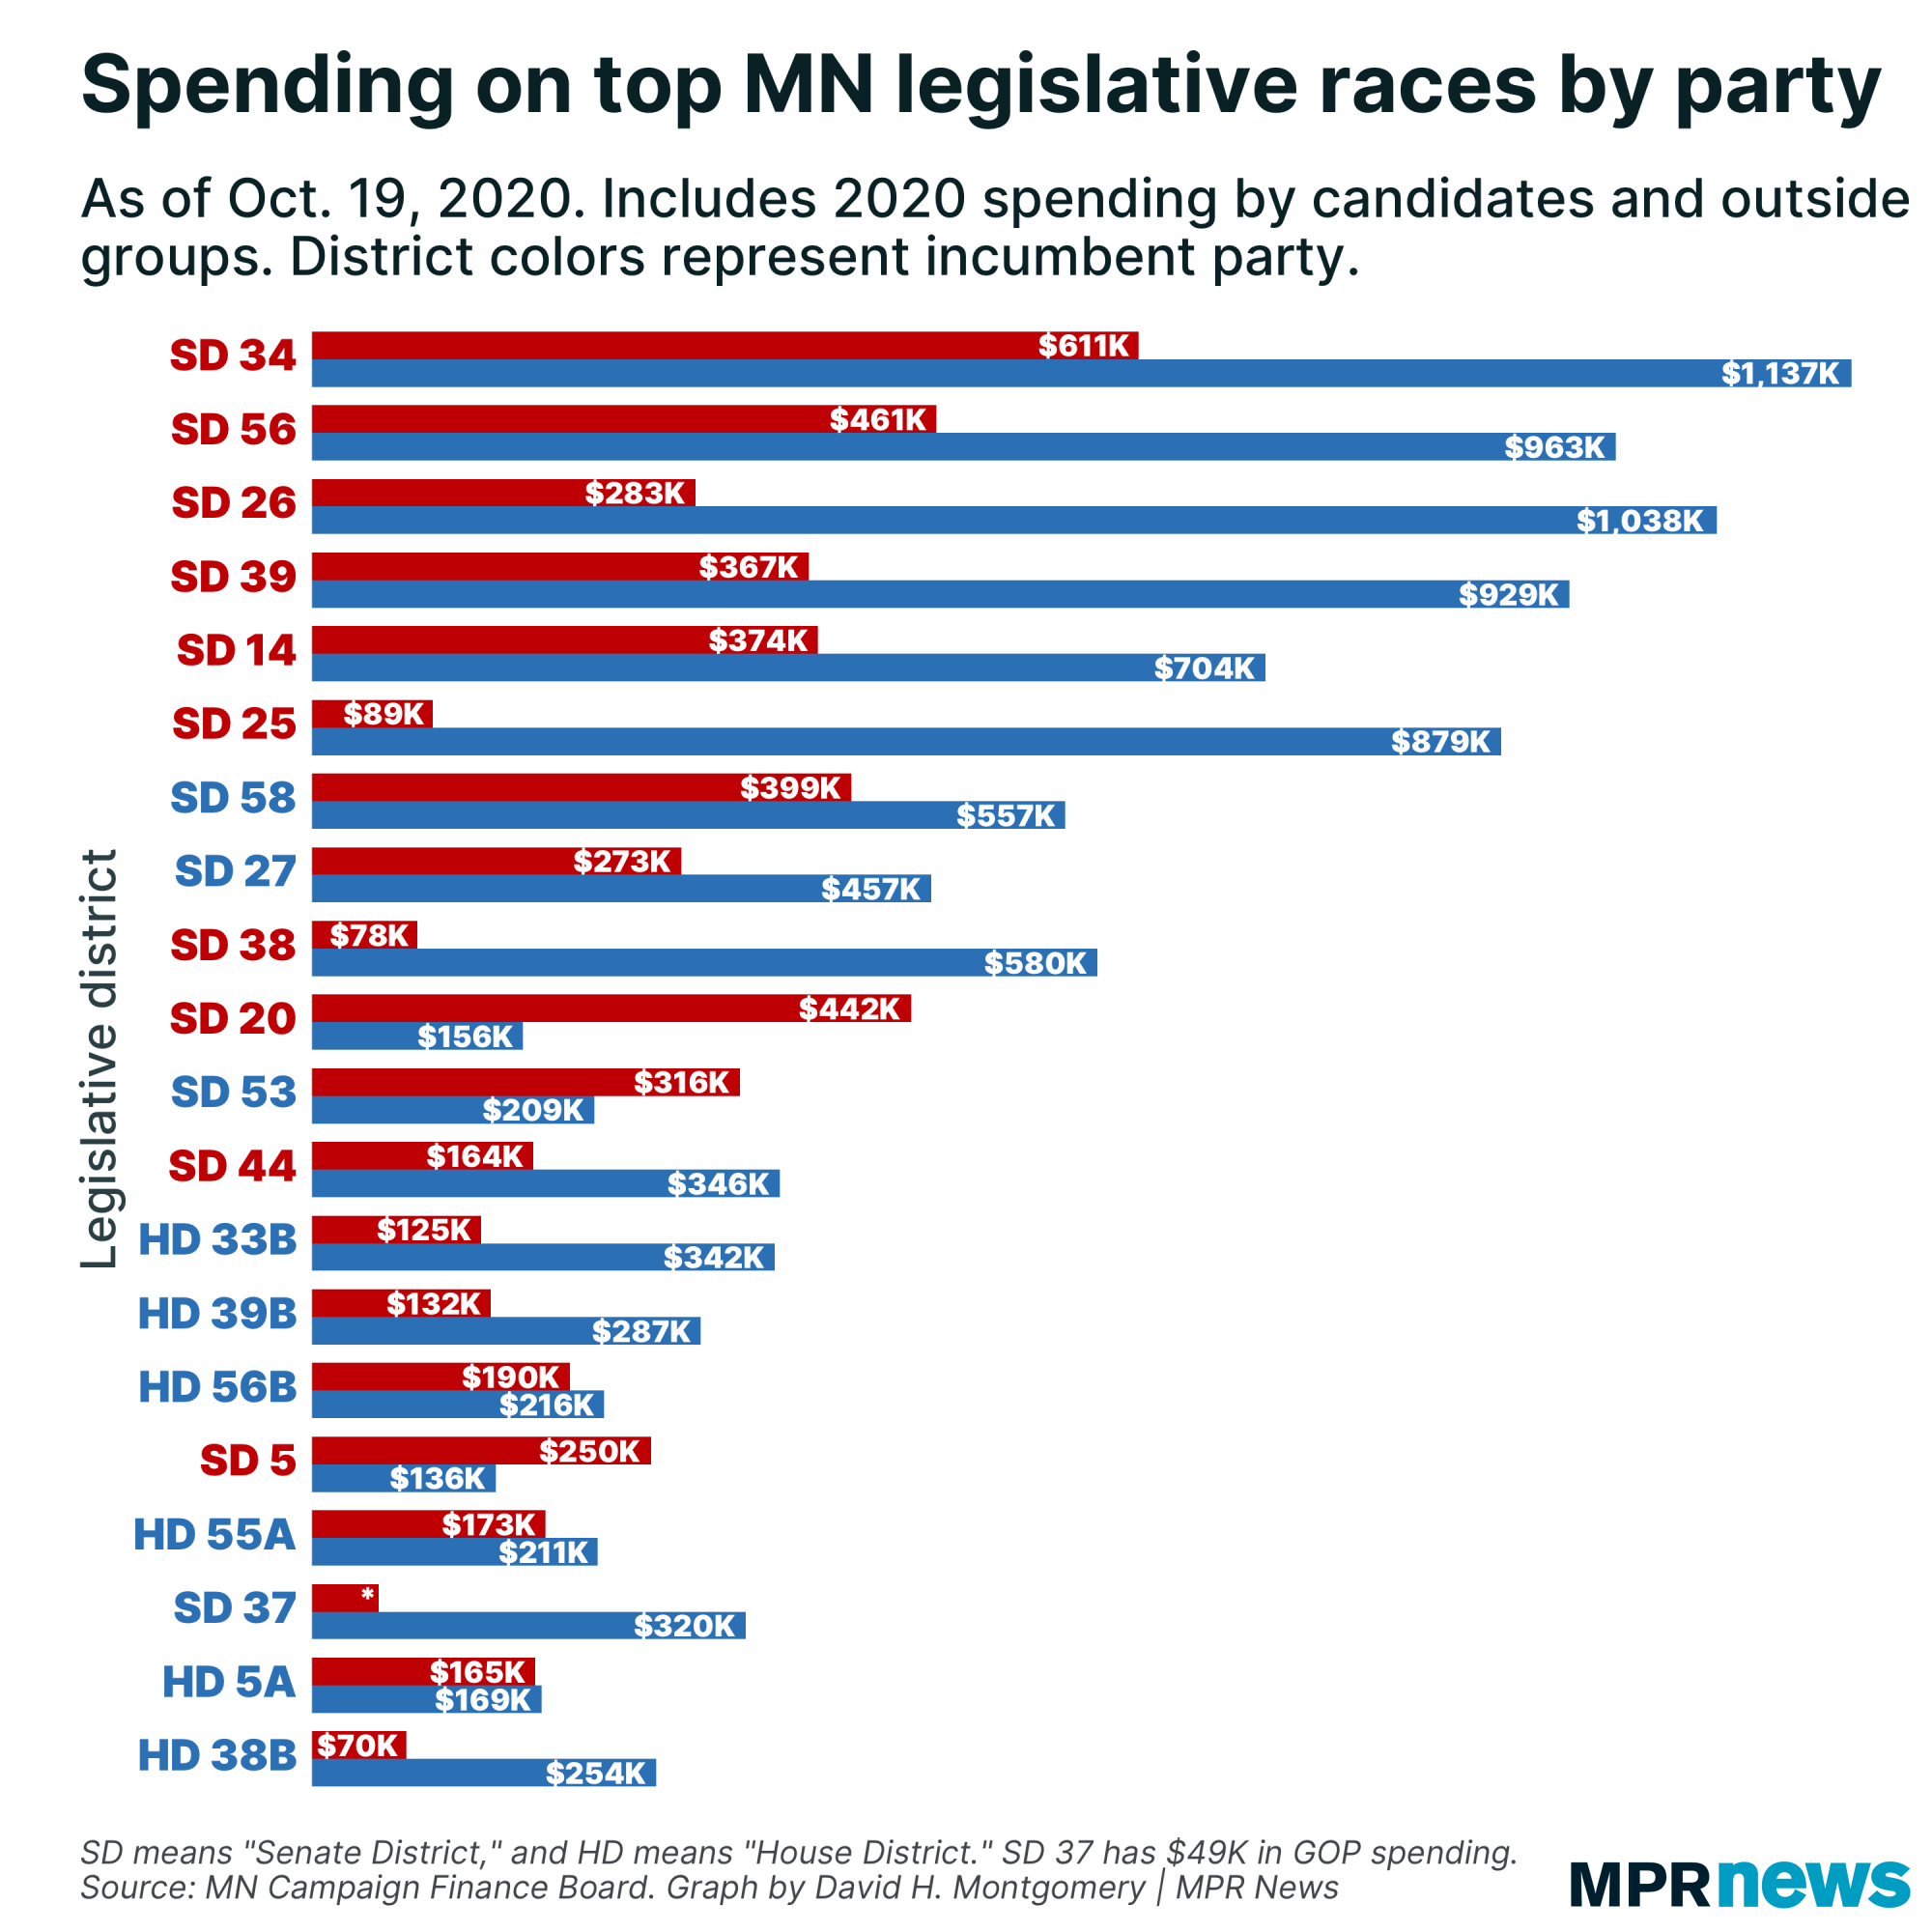 Spending on top MN legislative races by party